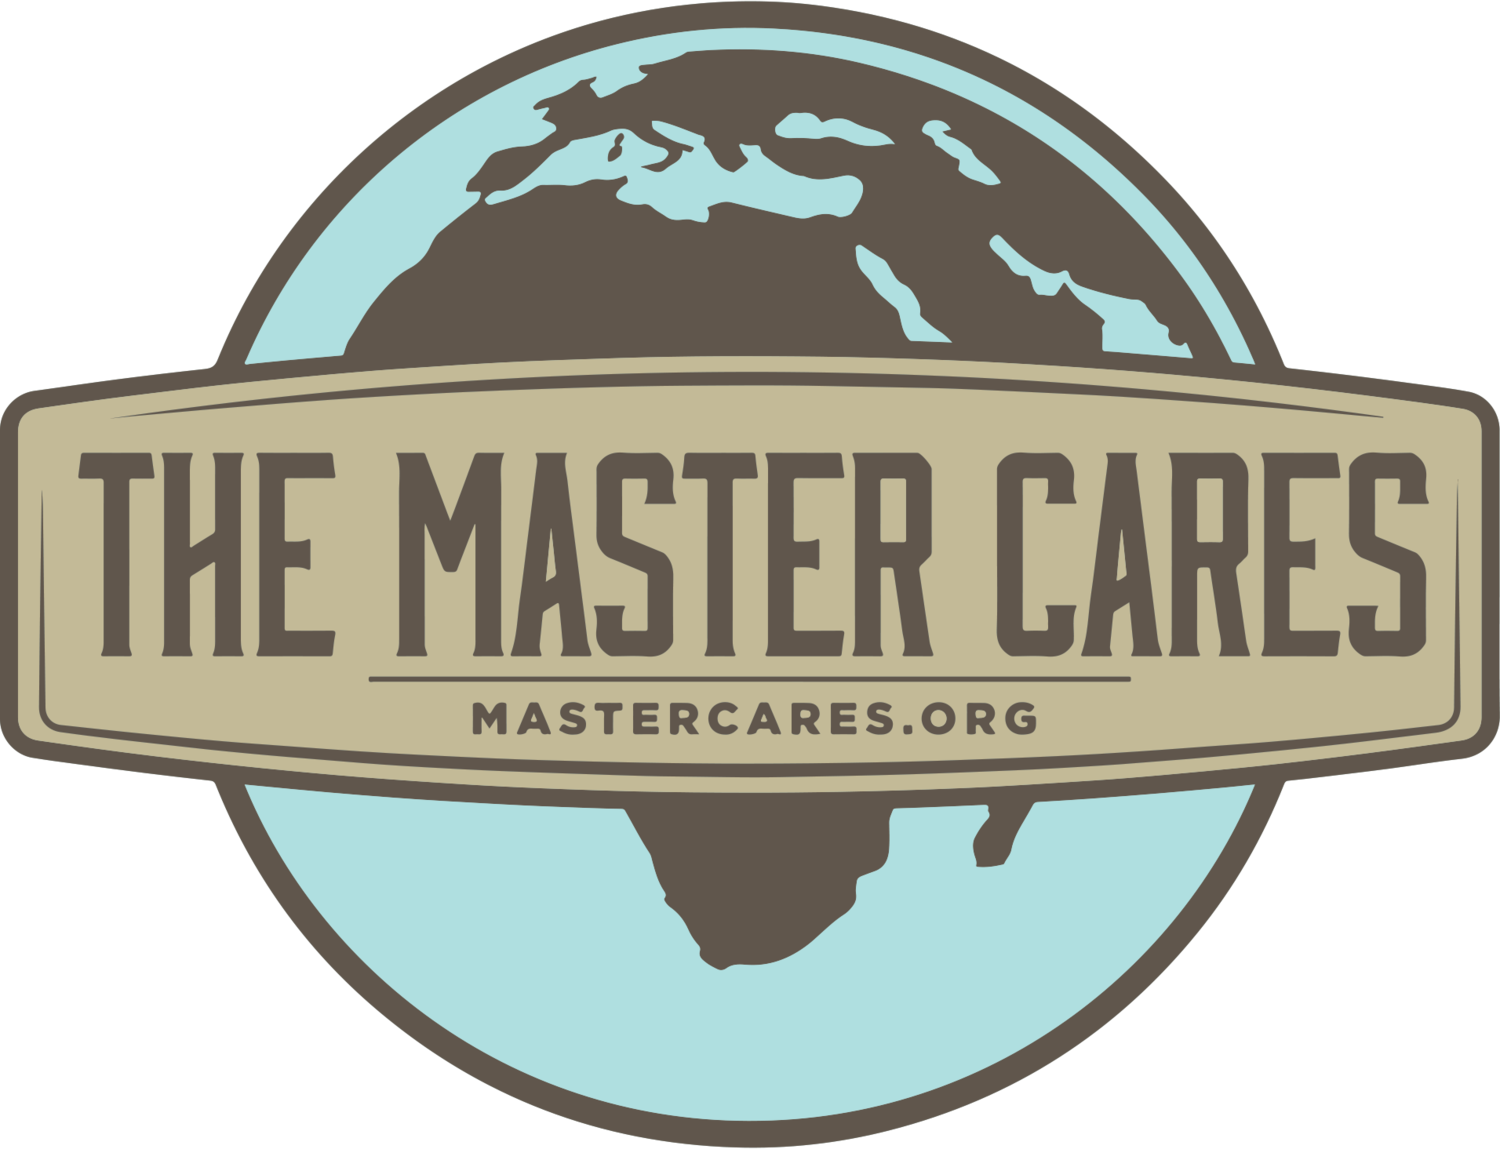 The Master Cares